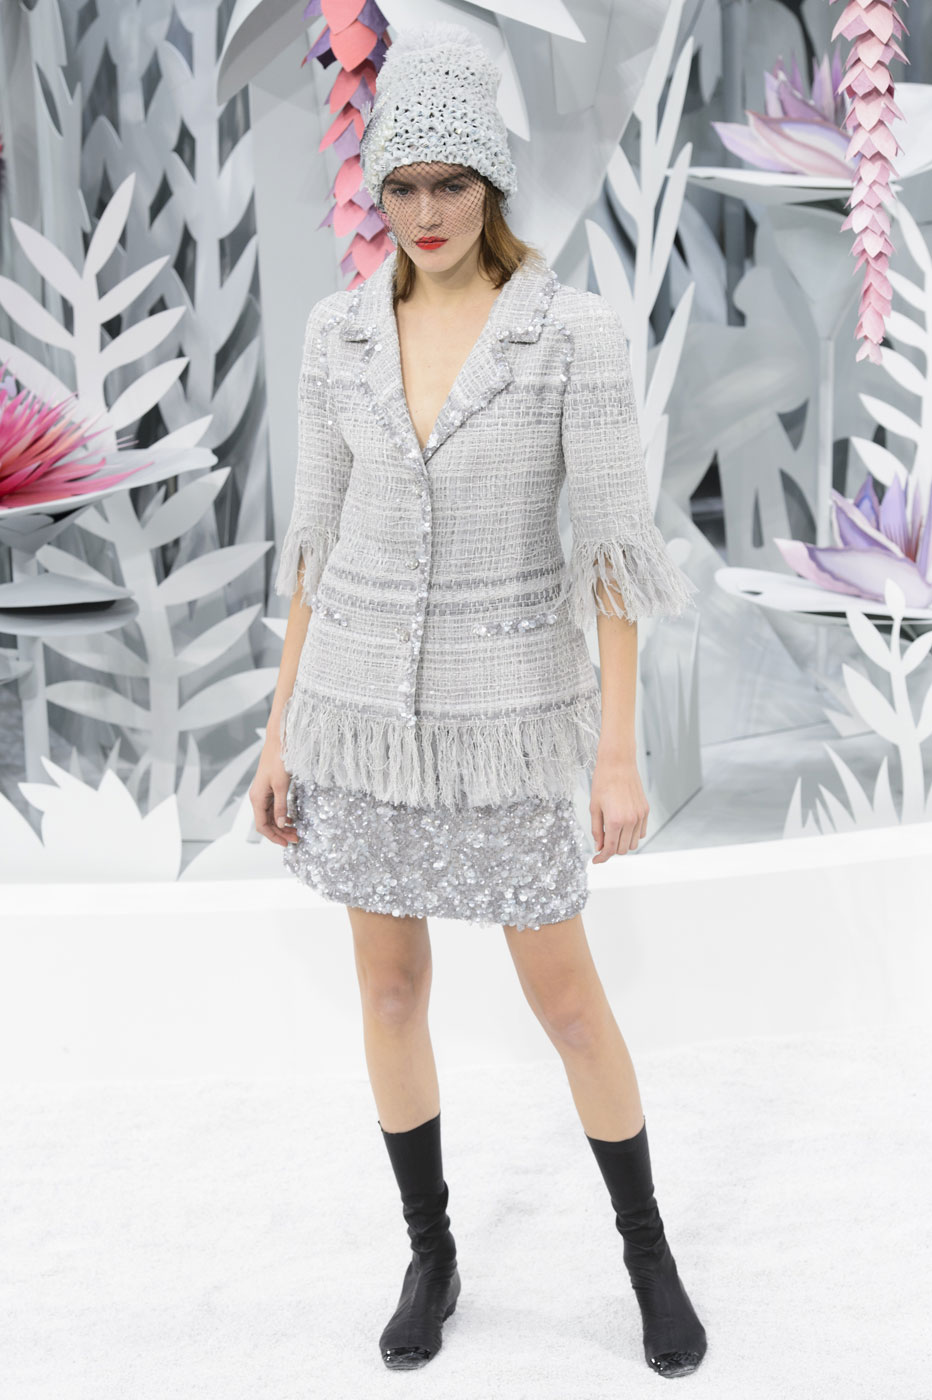 Chanel-fashion-runway-show-haute-couture-paris-spring-summer-2015-the-impression-060